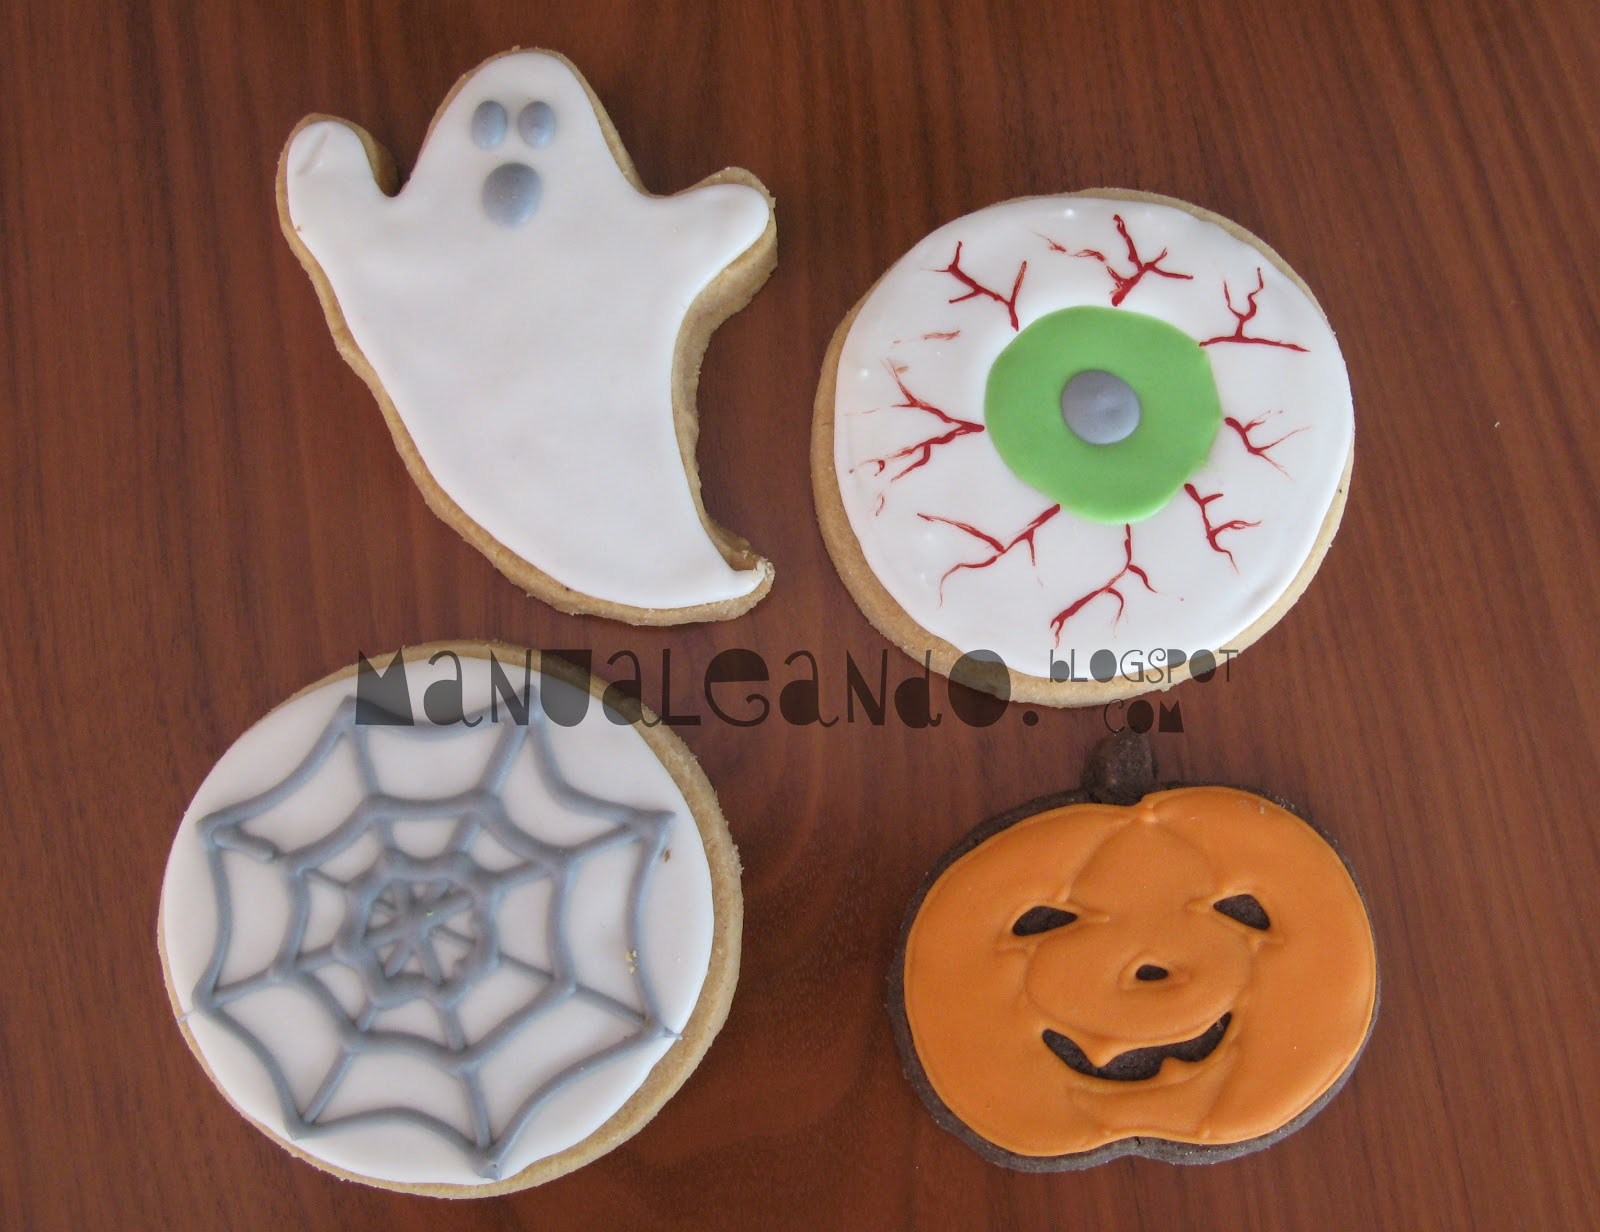 Galletas Decoradas Hallowen Manualeando Galletas De Halloween Decoradas Con Glasa